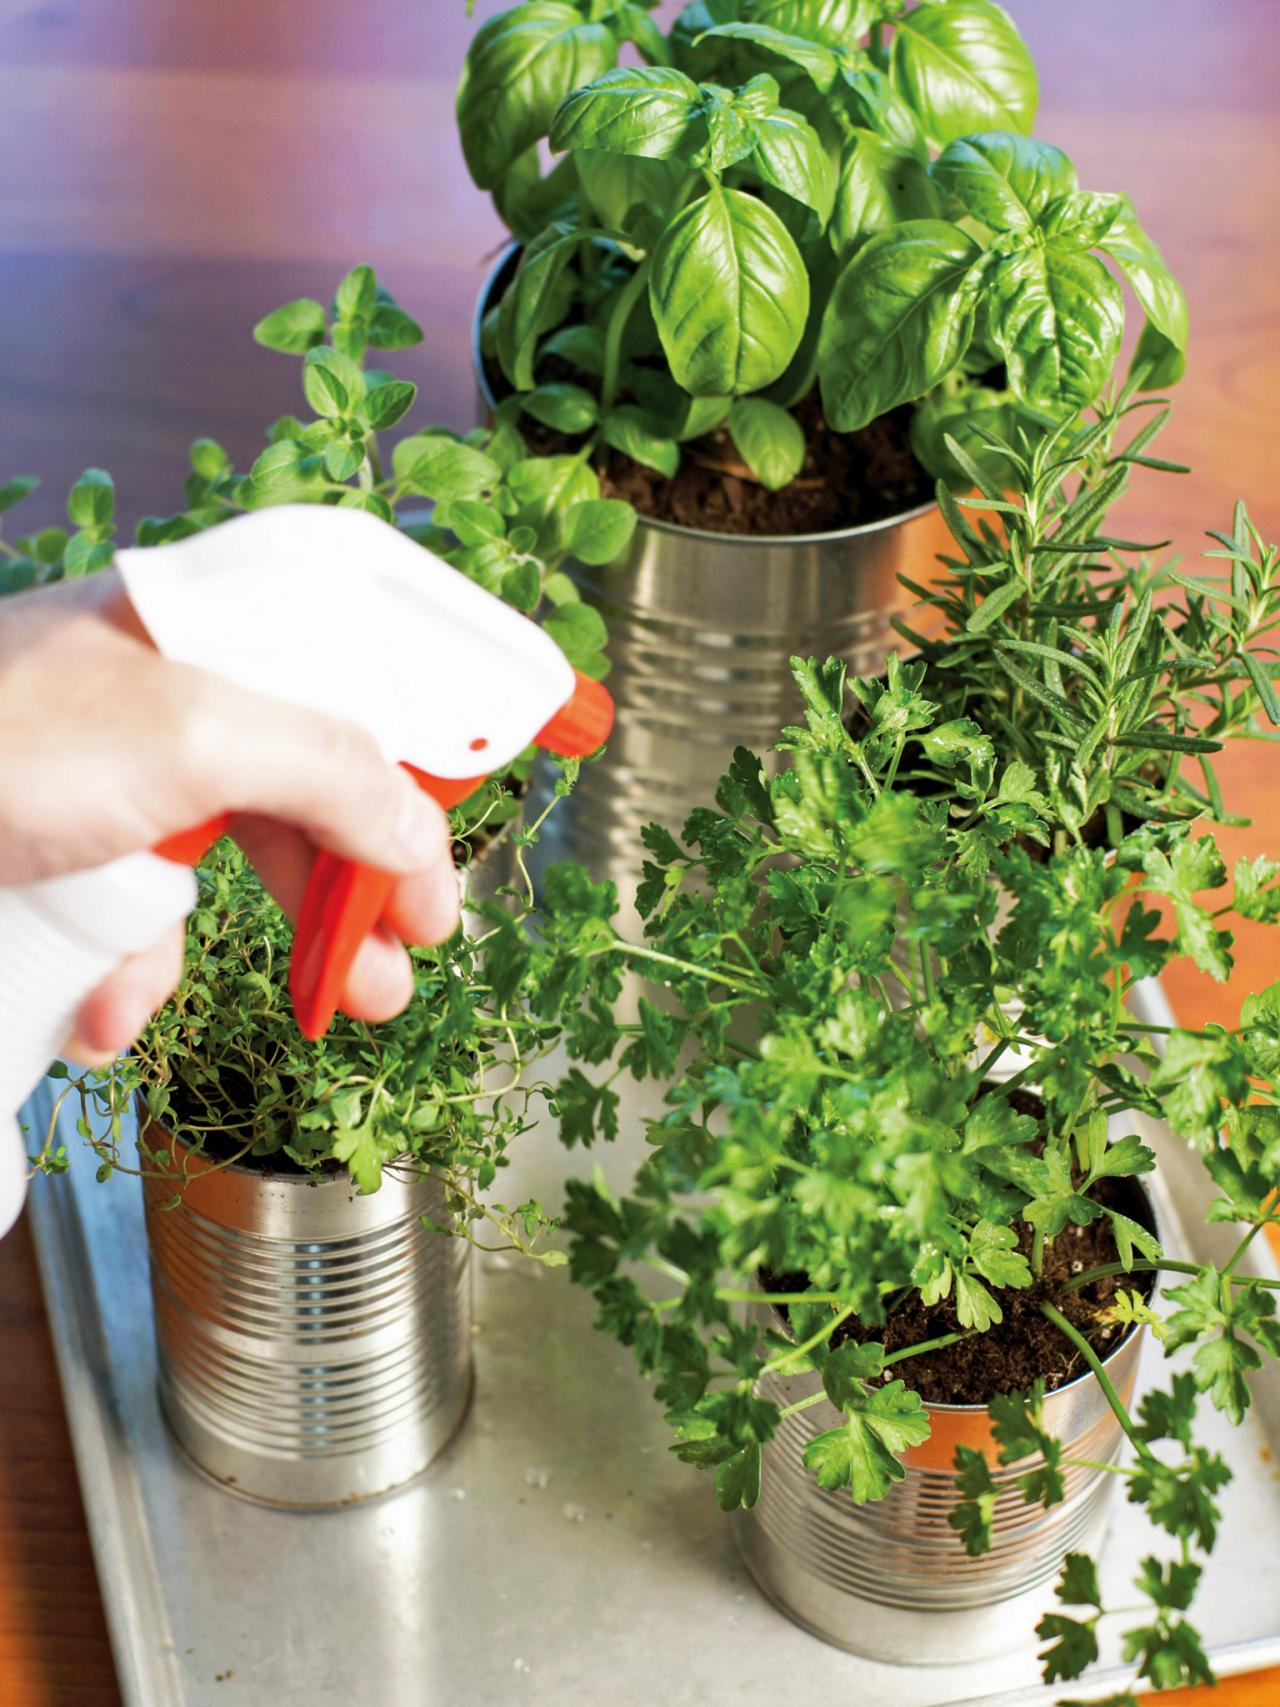 Herb Garden Ideas Designs grow your own kitchen countertop herb garden | hgtv